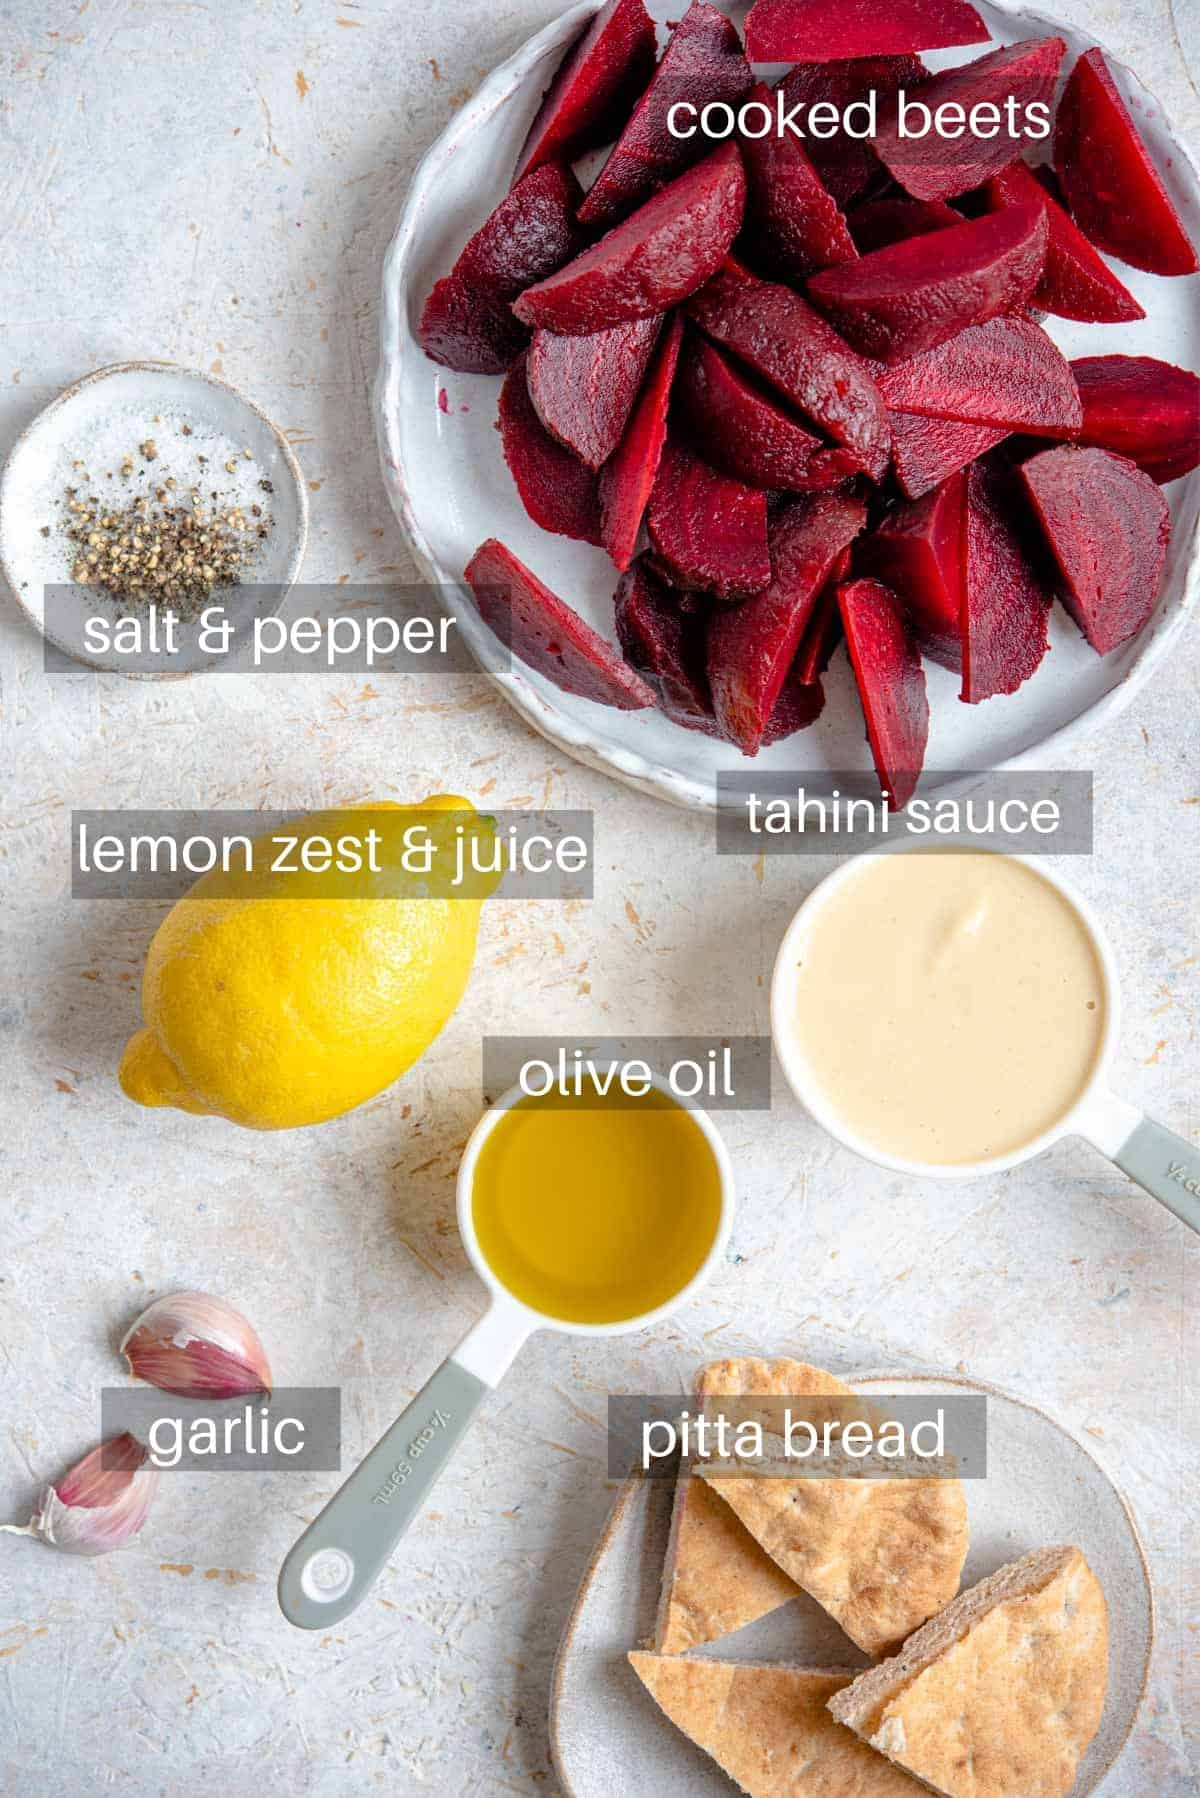 AN overhead shot of ingredients needed to make hummus with beets